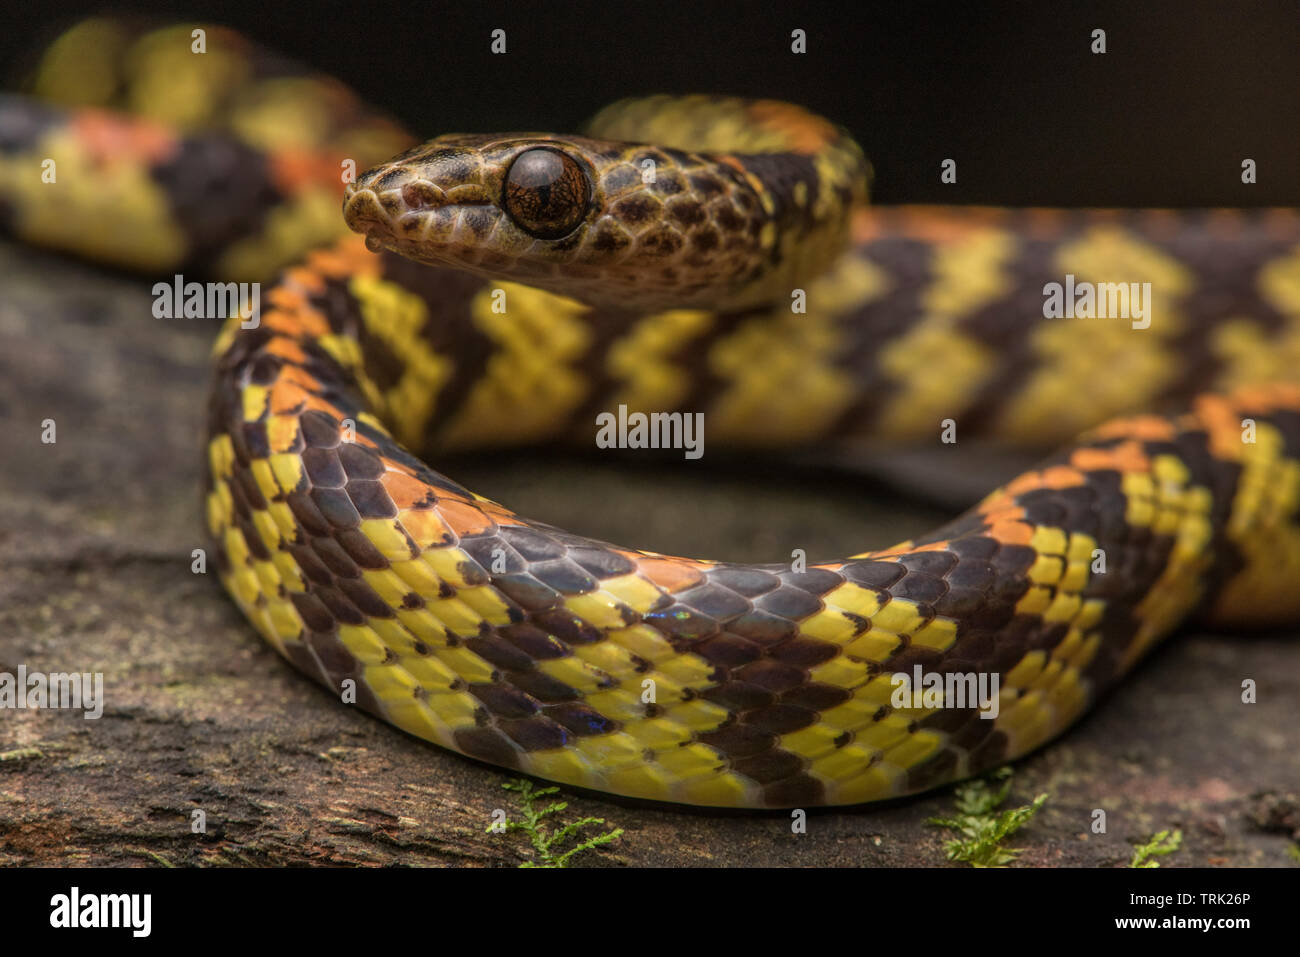 A panama spotted night snake (Siphlophis cervinus) it is harmless and feeds mainly on lizards. - Stock Image